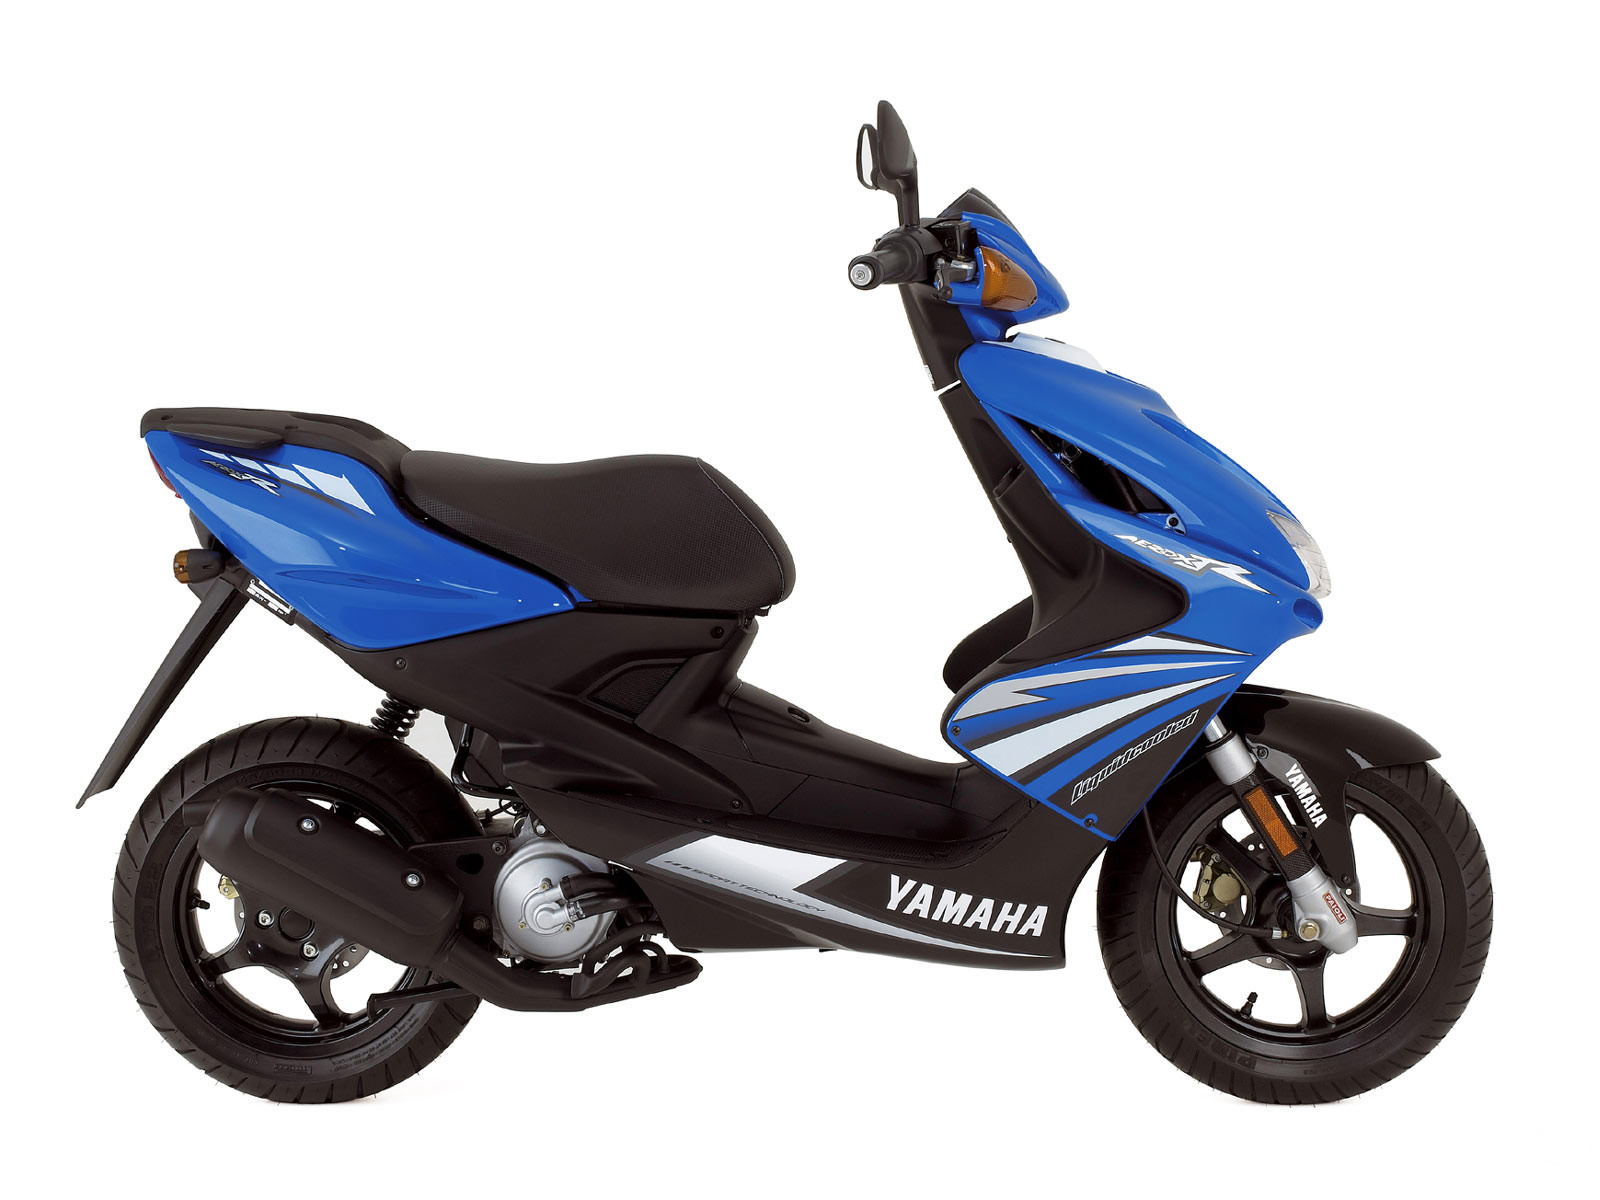 2016 Yamaha g series photo - 3